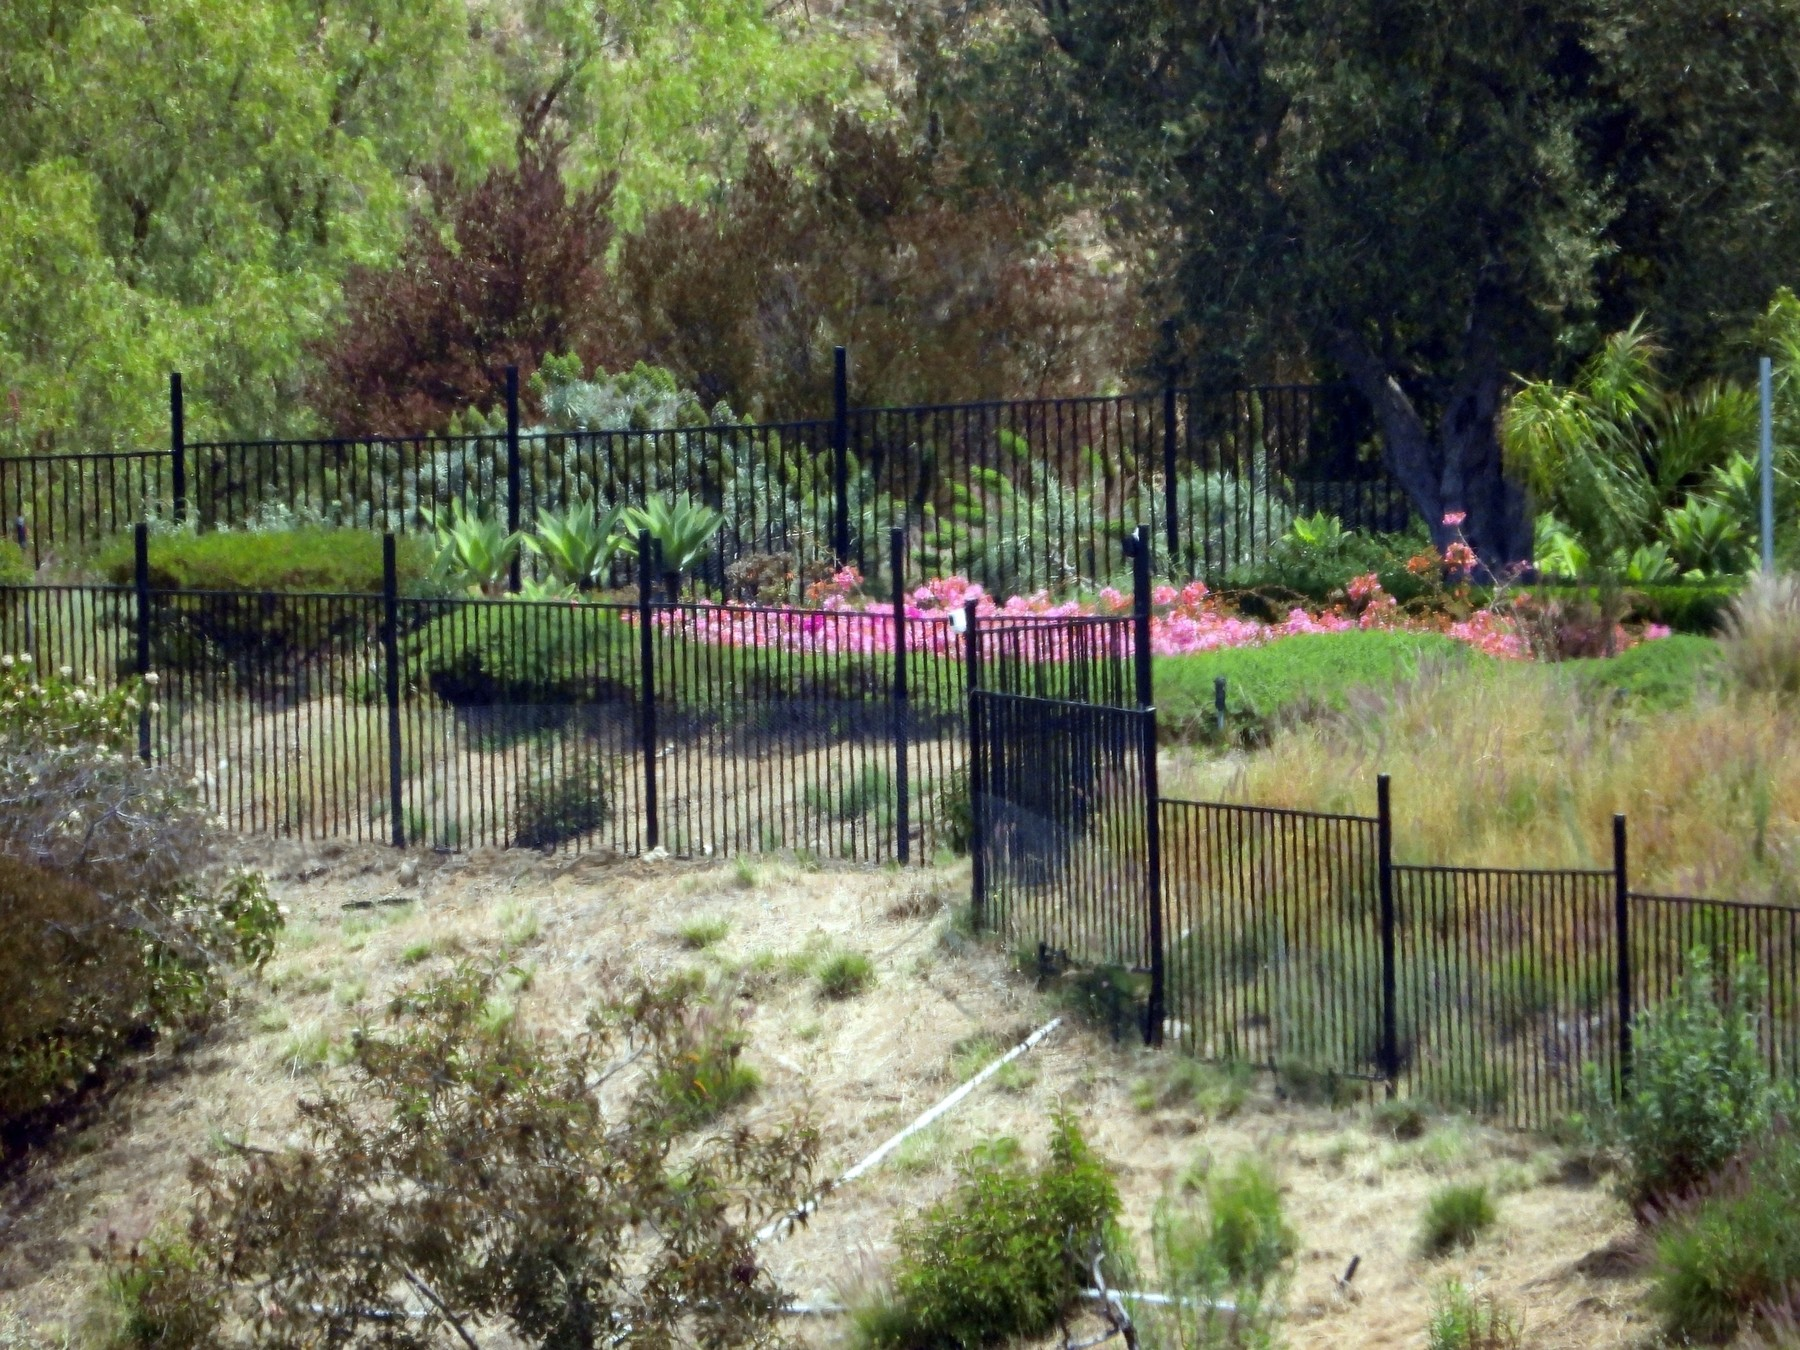 Beverly Hills, CA  - *EXCLUSIVE*  - New screens are erected by workmen at the Beverly Hills mansion owned by Tyler Perry, now reportedly the American home of Prince Harry, his wife Meghan Markle and their baby son, Archie. These photos were taken from a hiking trail close to the  million property which opened to the public on Saturday, May 9, 2020. A hiking trail leads up a steep hill to the edge of the property, where a security camera is situated. There are also security cameras set up on fences dotted around the home. From the mansion, it is also possible for the Duke and Duchess of Sussex to look down at the homes of showbiz royalty Sylvester Stallone, Mark Wahlberg and Rod Stewart who all own multi-million dollar mansions in the neighboring Beverly Park estate. Sylvester Stallone's home is the one with the outdoor pool, Rod Stewart's is the French-style mansion and it is just possible to see his soccer pitch, while Mark Wahlberg's home has what appears to be a circular turret.  BACKGRID USA 11 MAY 2020, Image: 518624861, License: Rights-managed, Restrictions: , Model Release: no, Credit line: BACKGRID / Backgrid USA / Profimedia